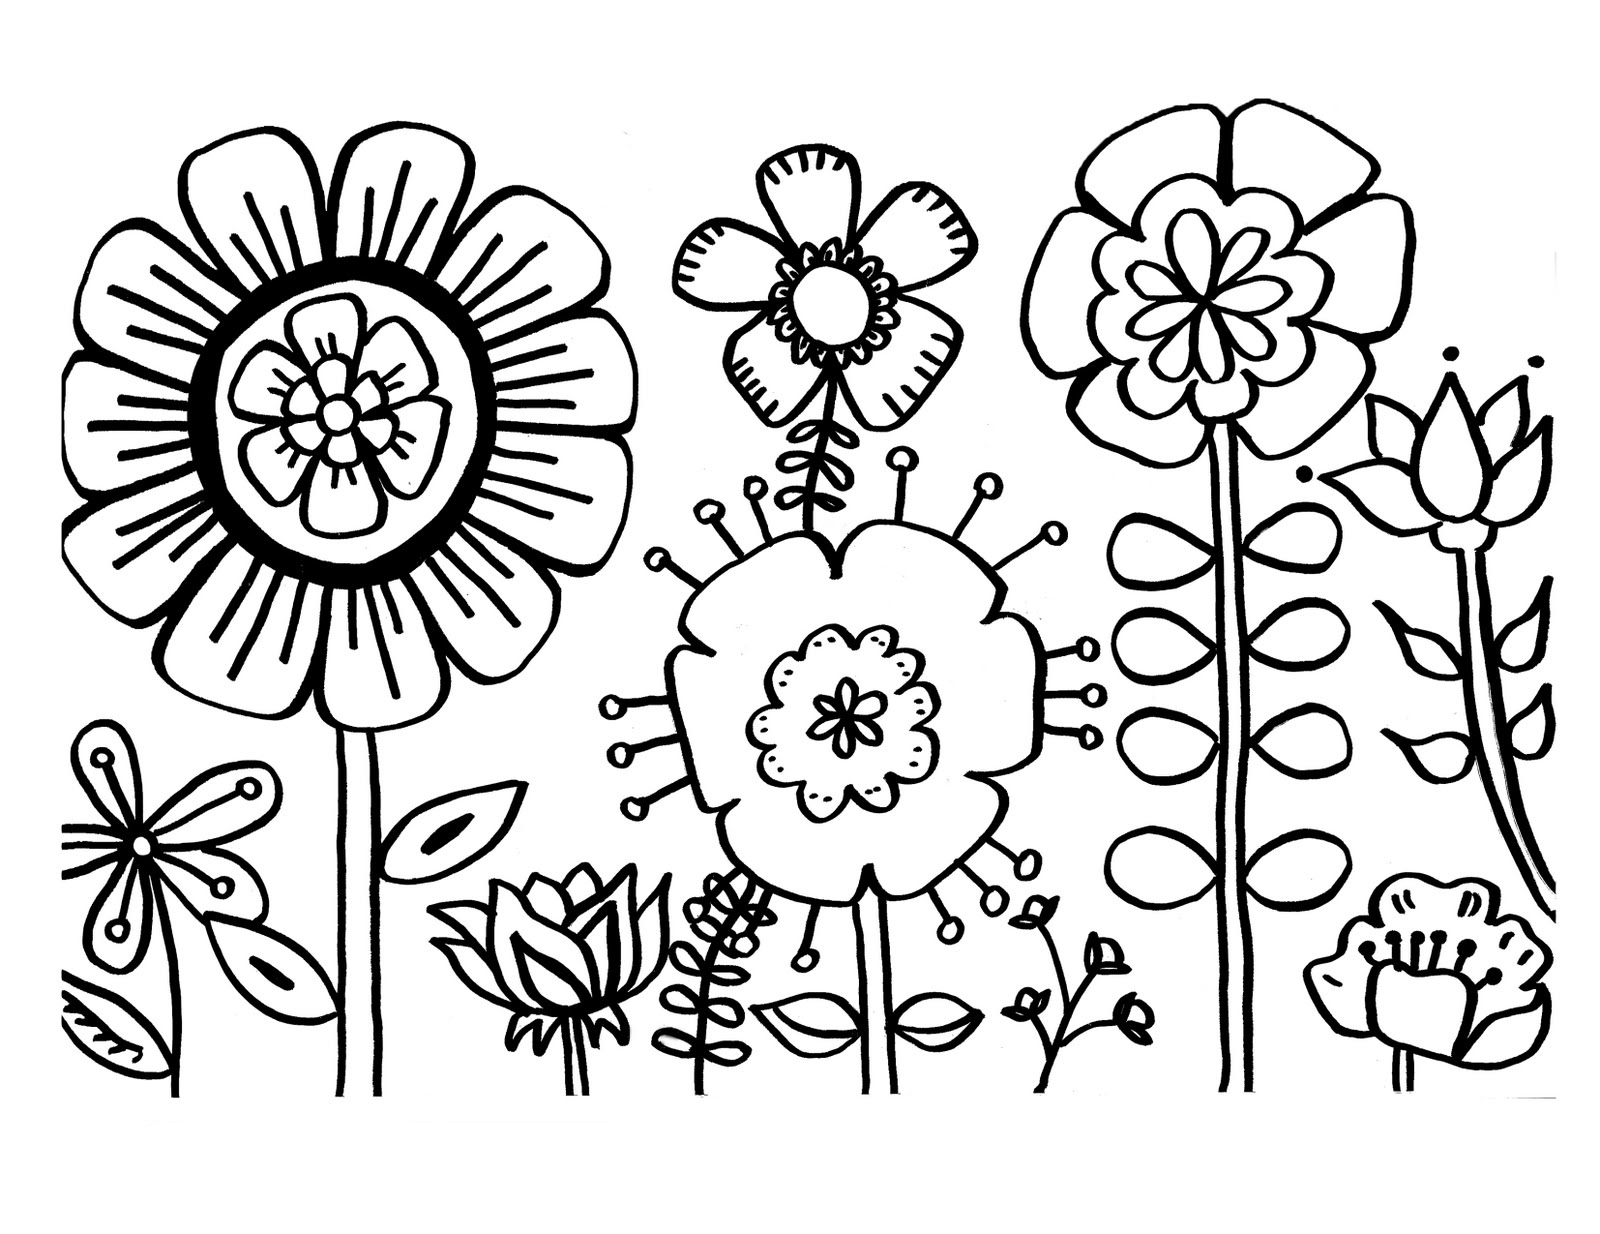 free printable flower coloring for kids best flowers to colour worm word game halloween coloring pages Coloring Page Flowers